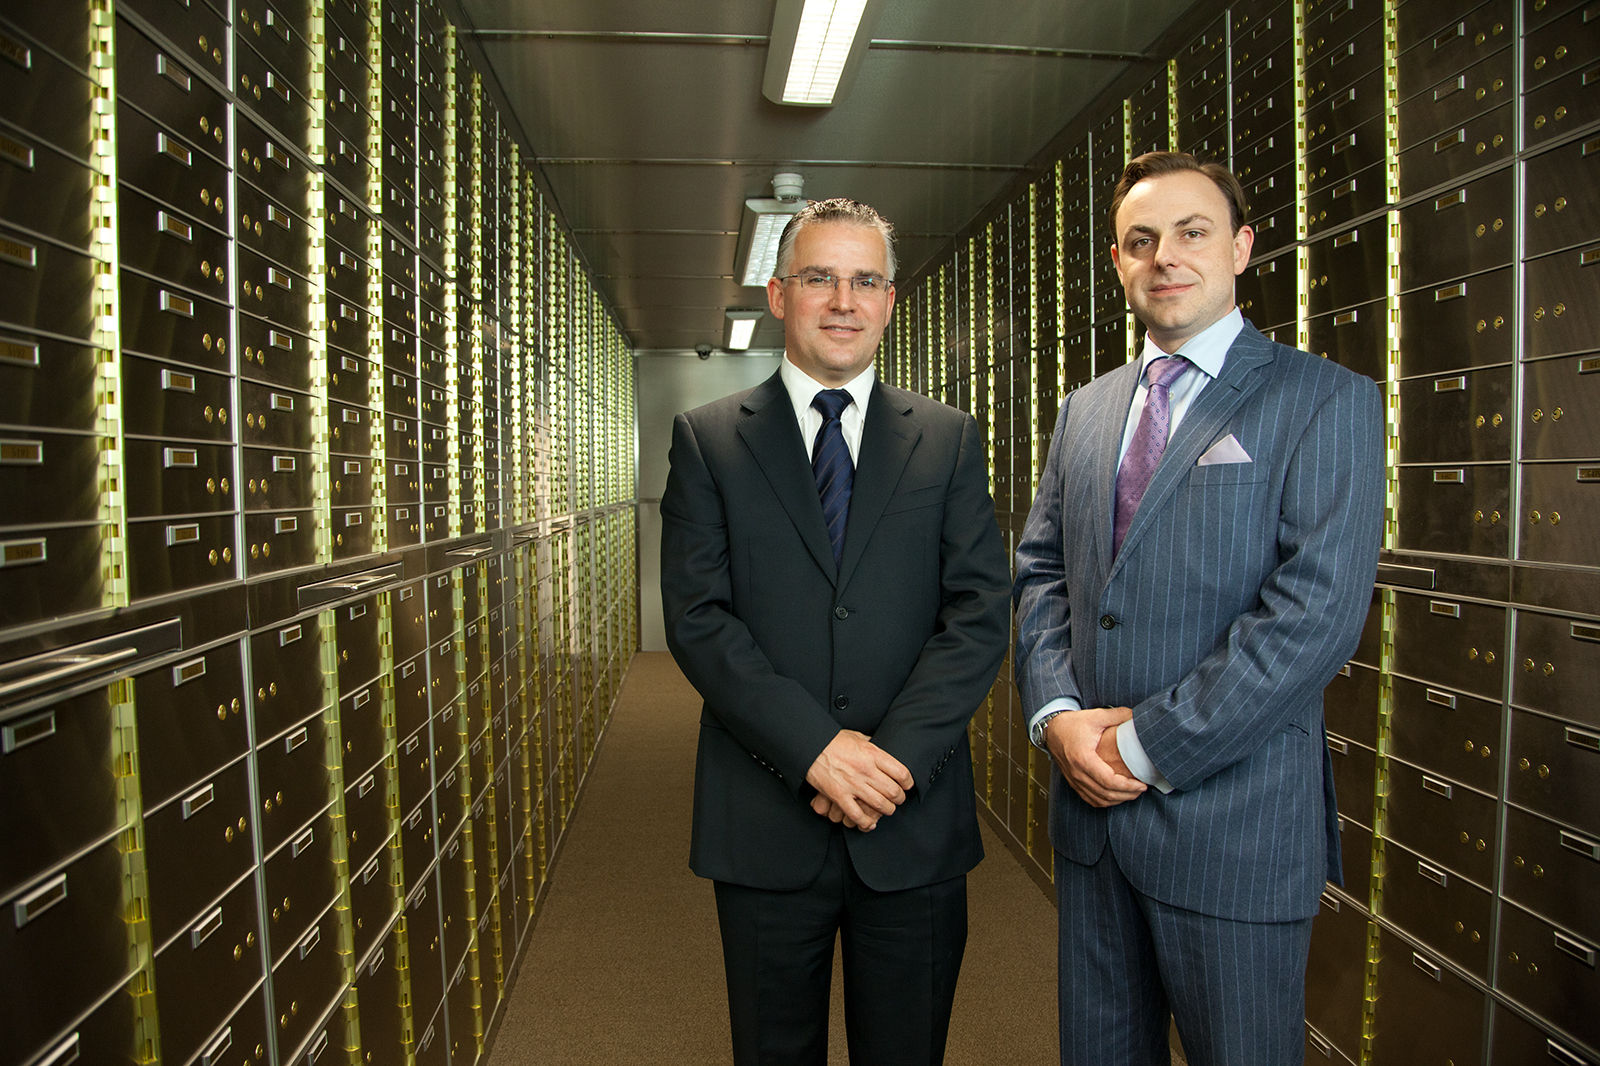 Midlands first high security safe deposit box facility opens in nottingham